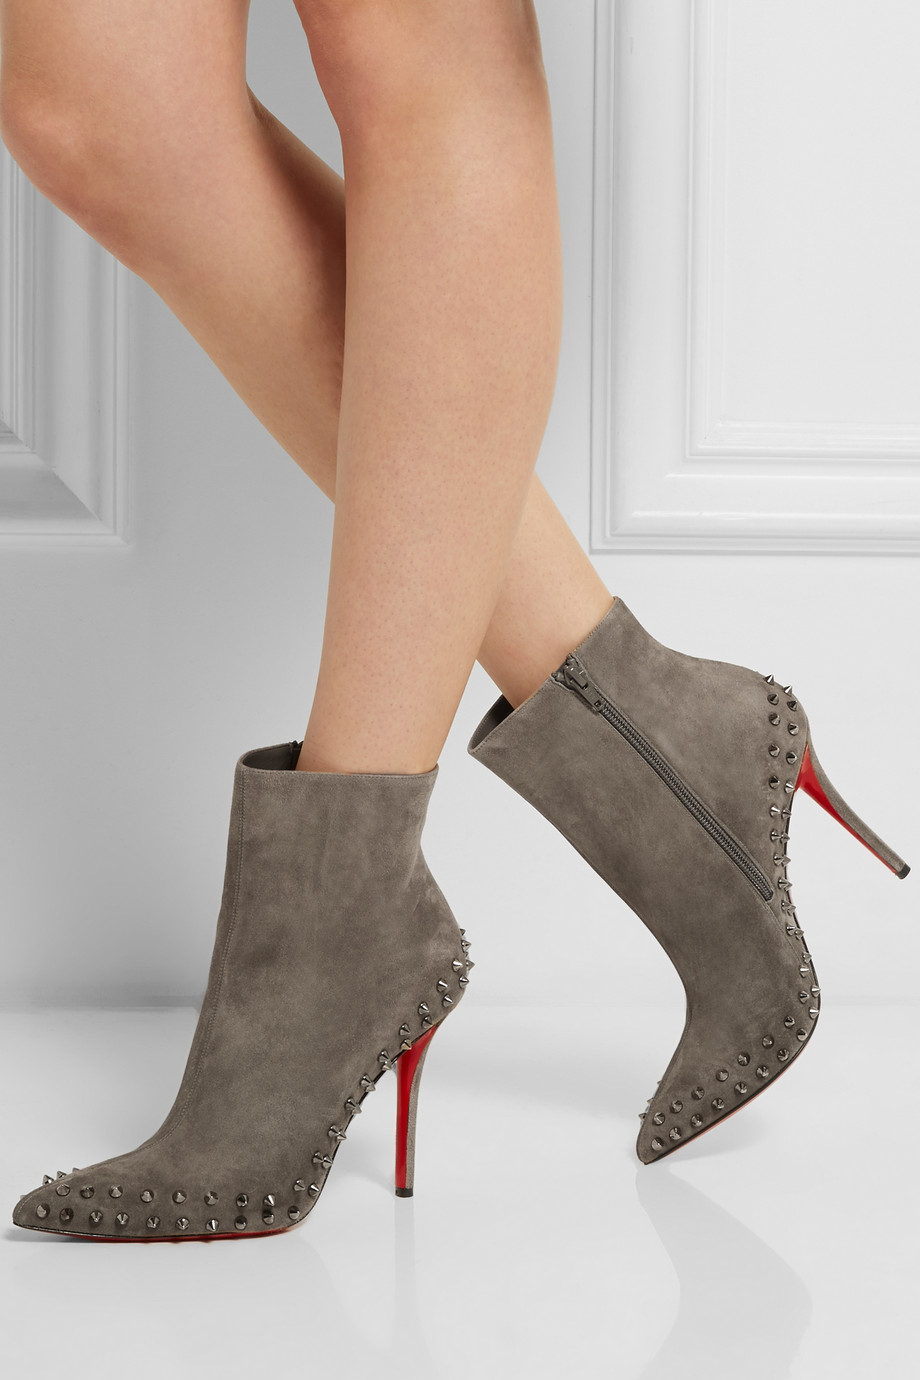 super popular 157c3 10e94 inexpensive spiked louboutin ankle boots fd41a a5baa